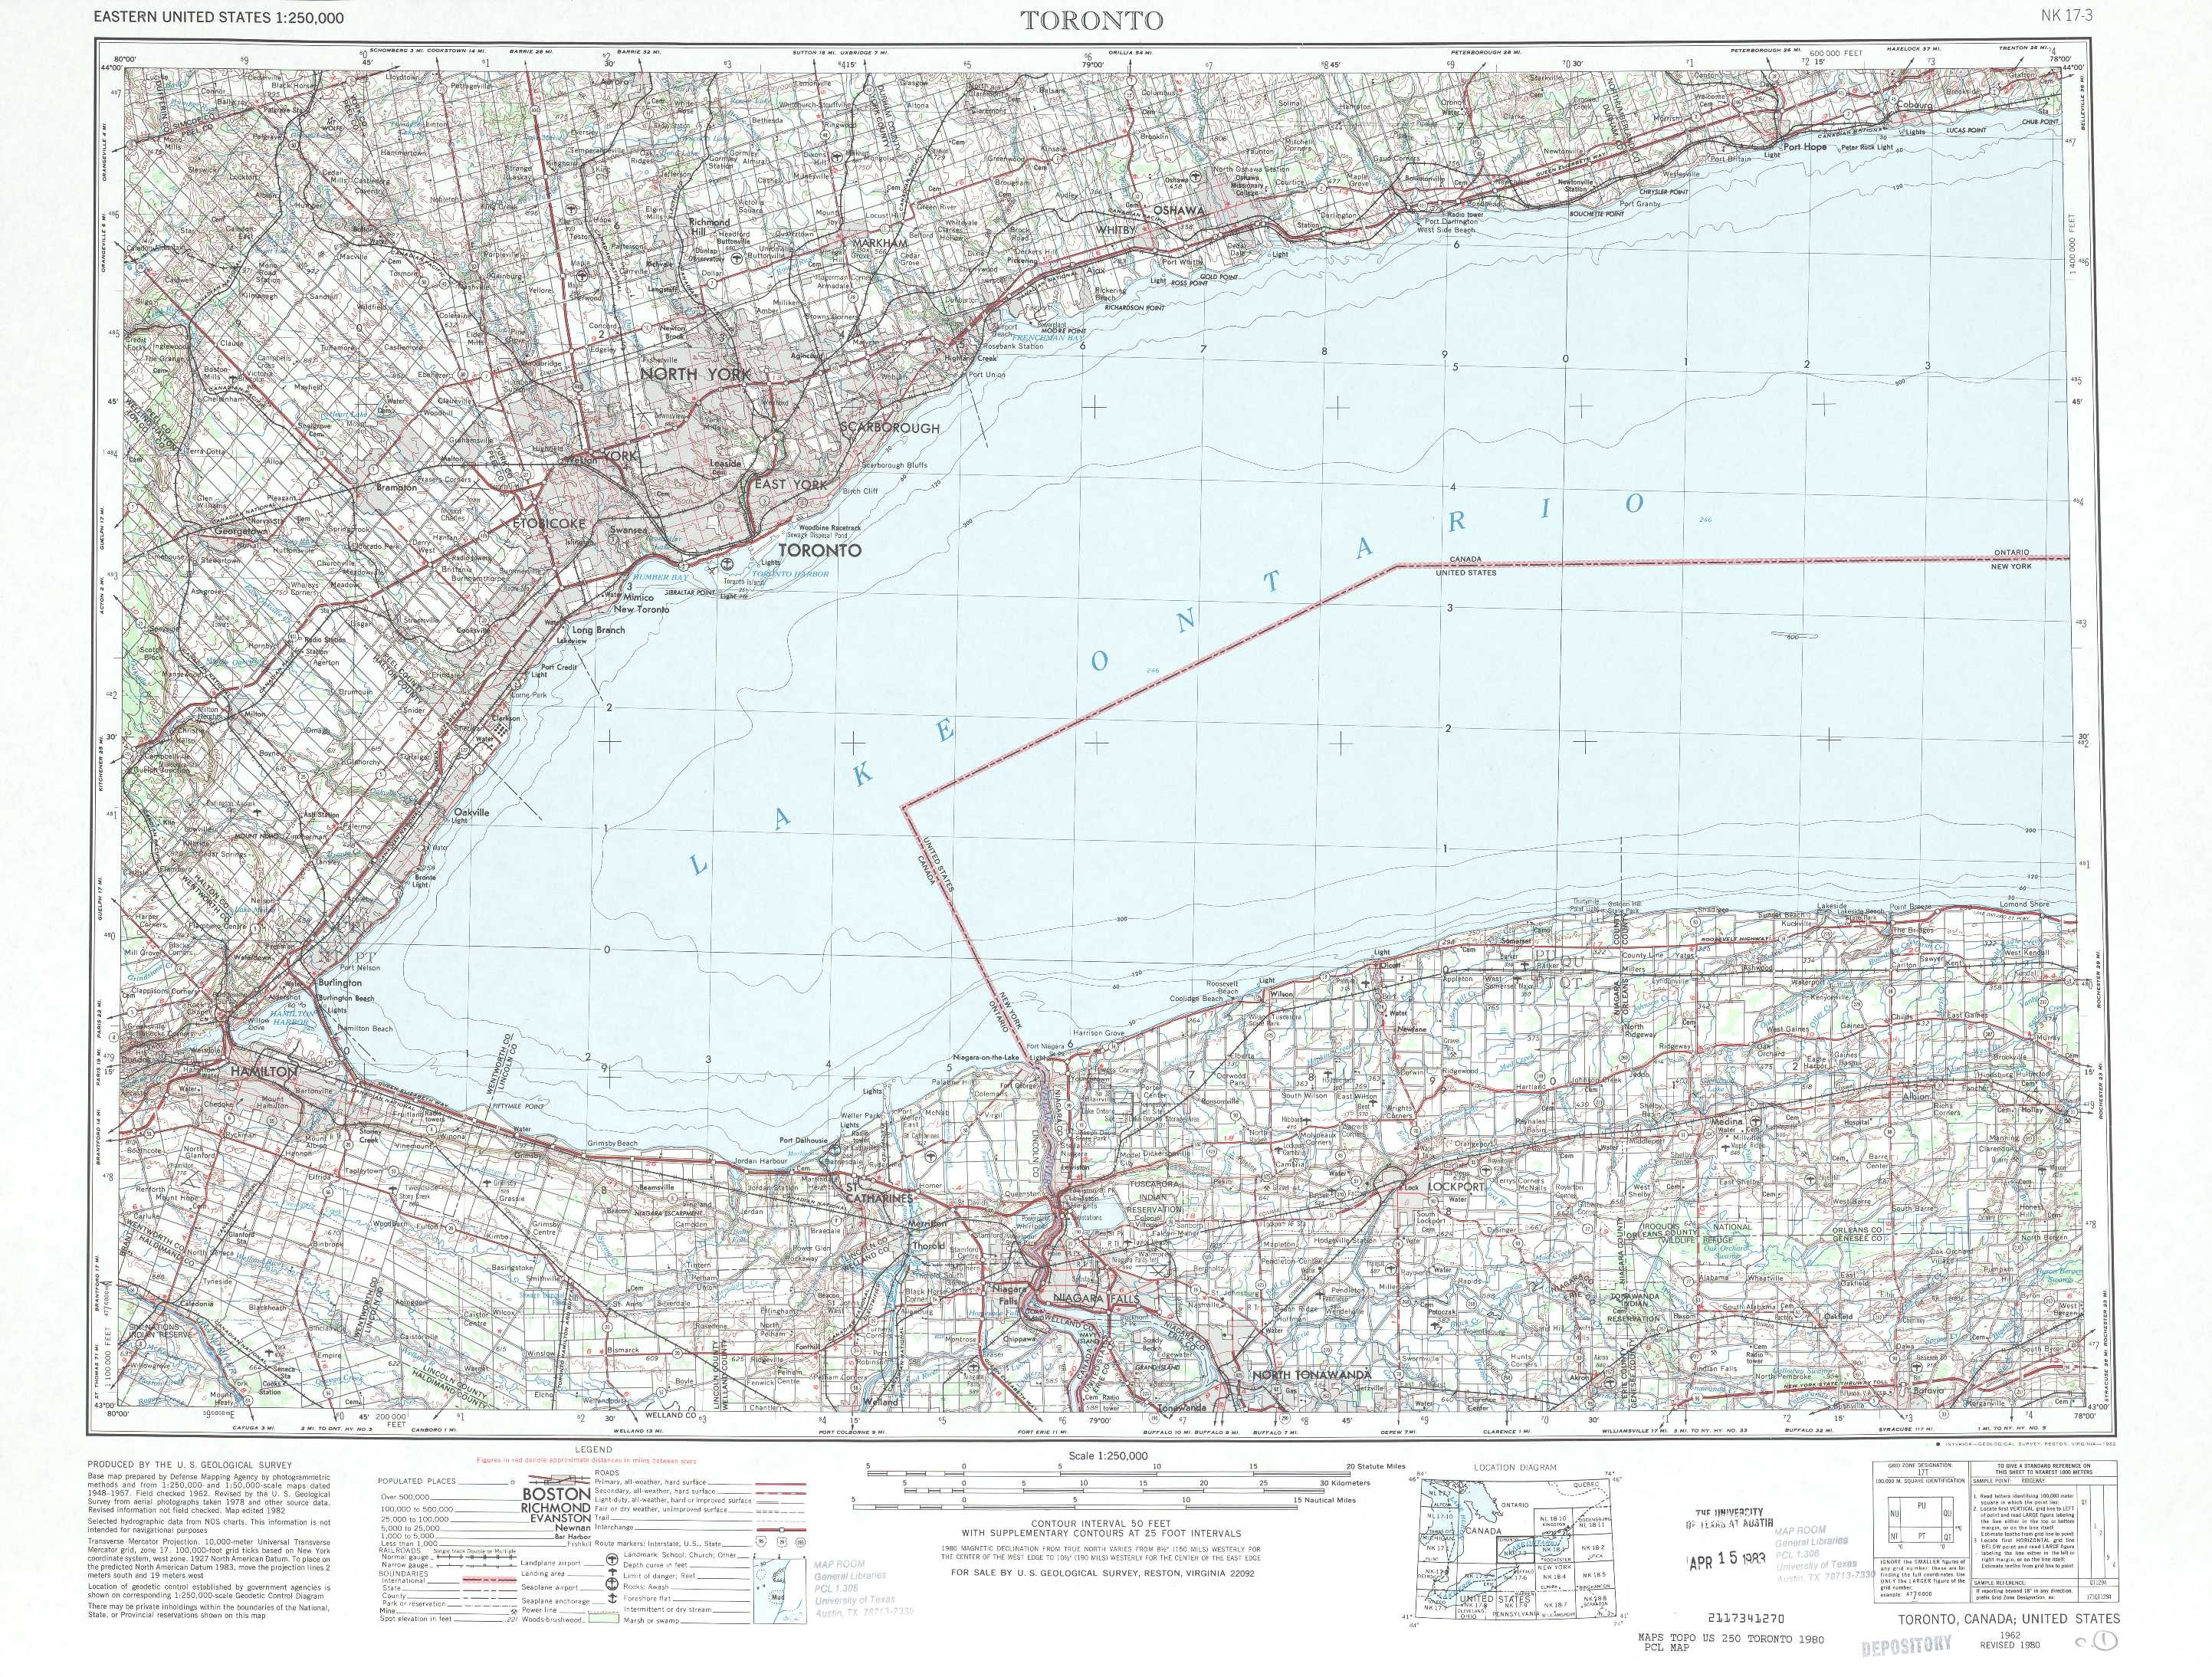 Toronto Topographic Maps NY  USGS Topo Quad 43078a1 At 1